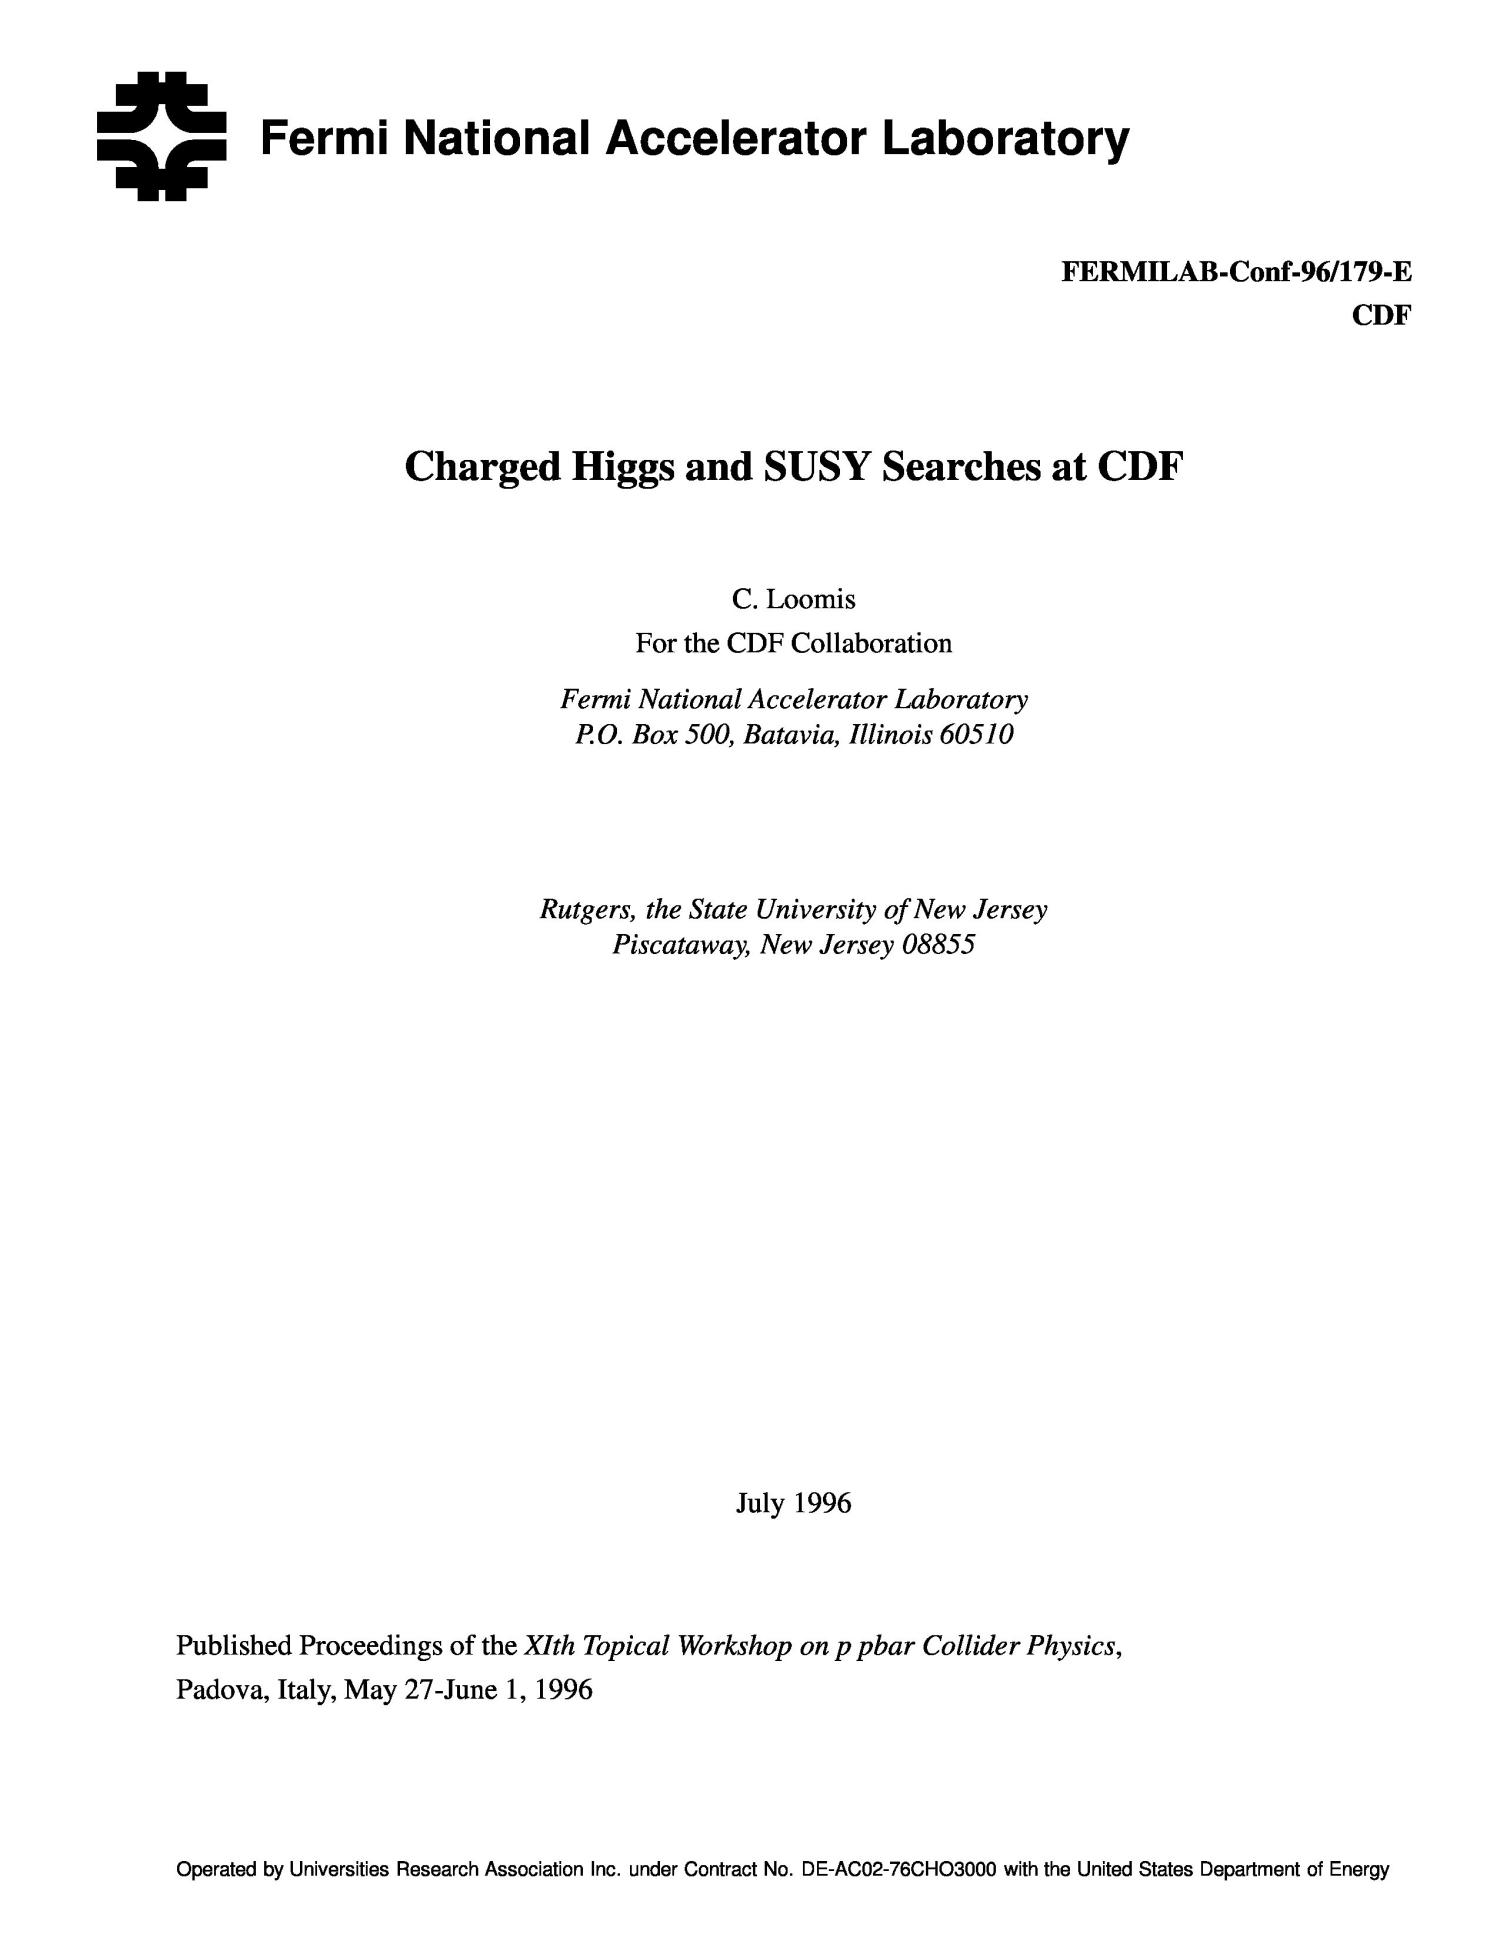 Charged Higgs and SUSY searches at CDF                                                                                                      [Sequence #]: 1 of 11